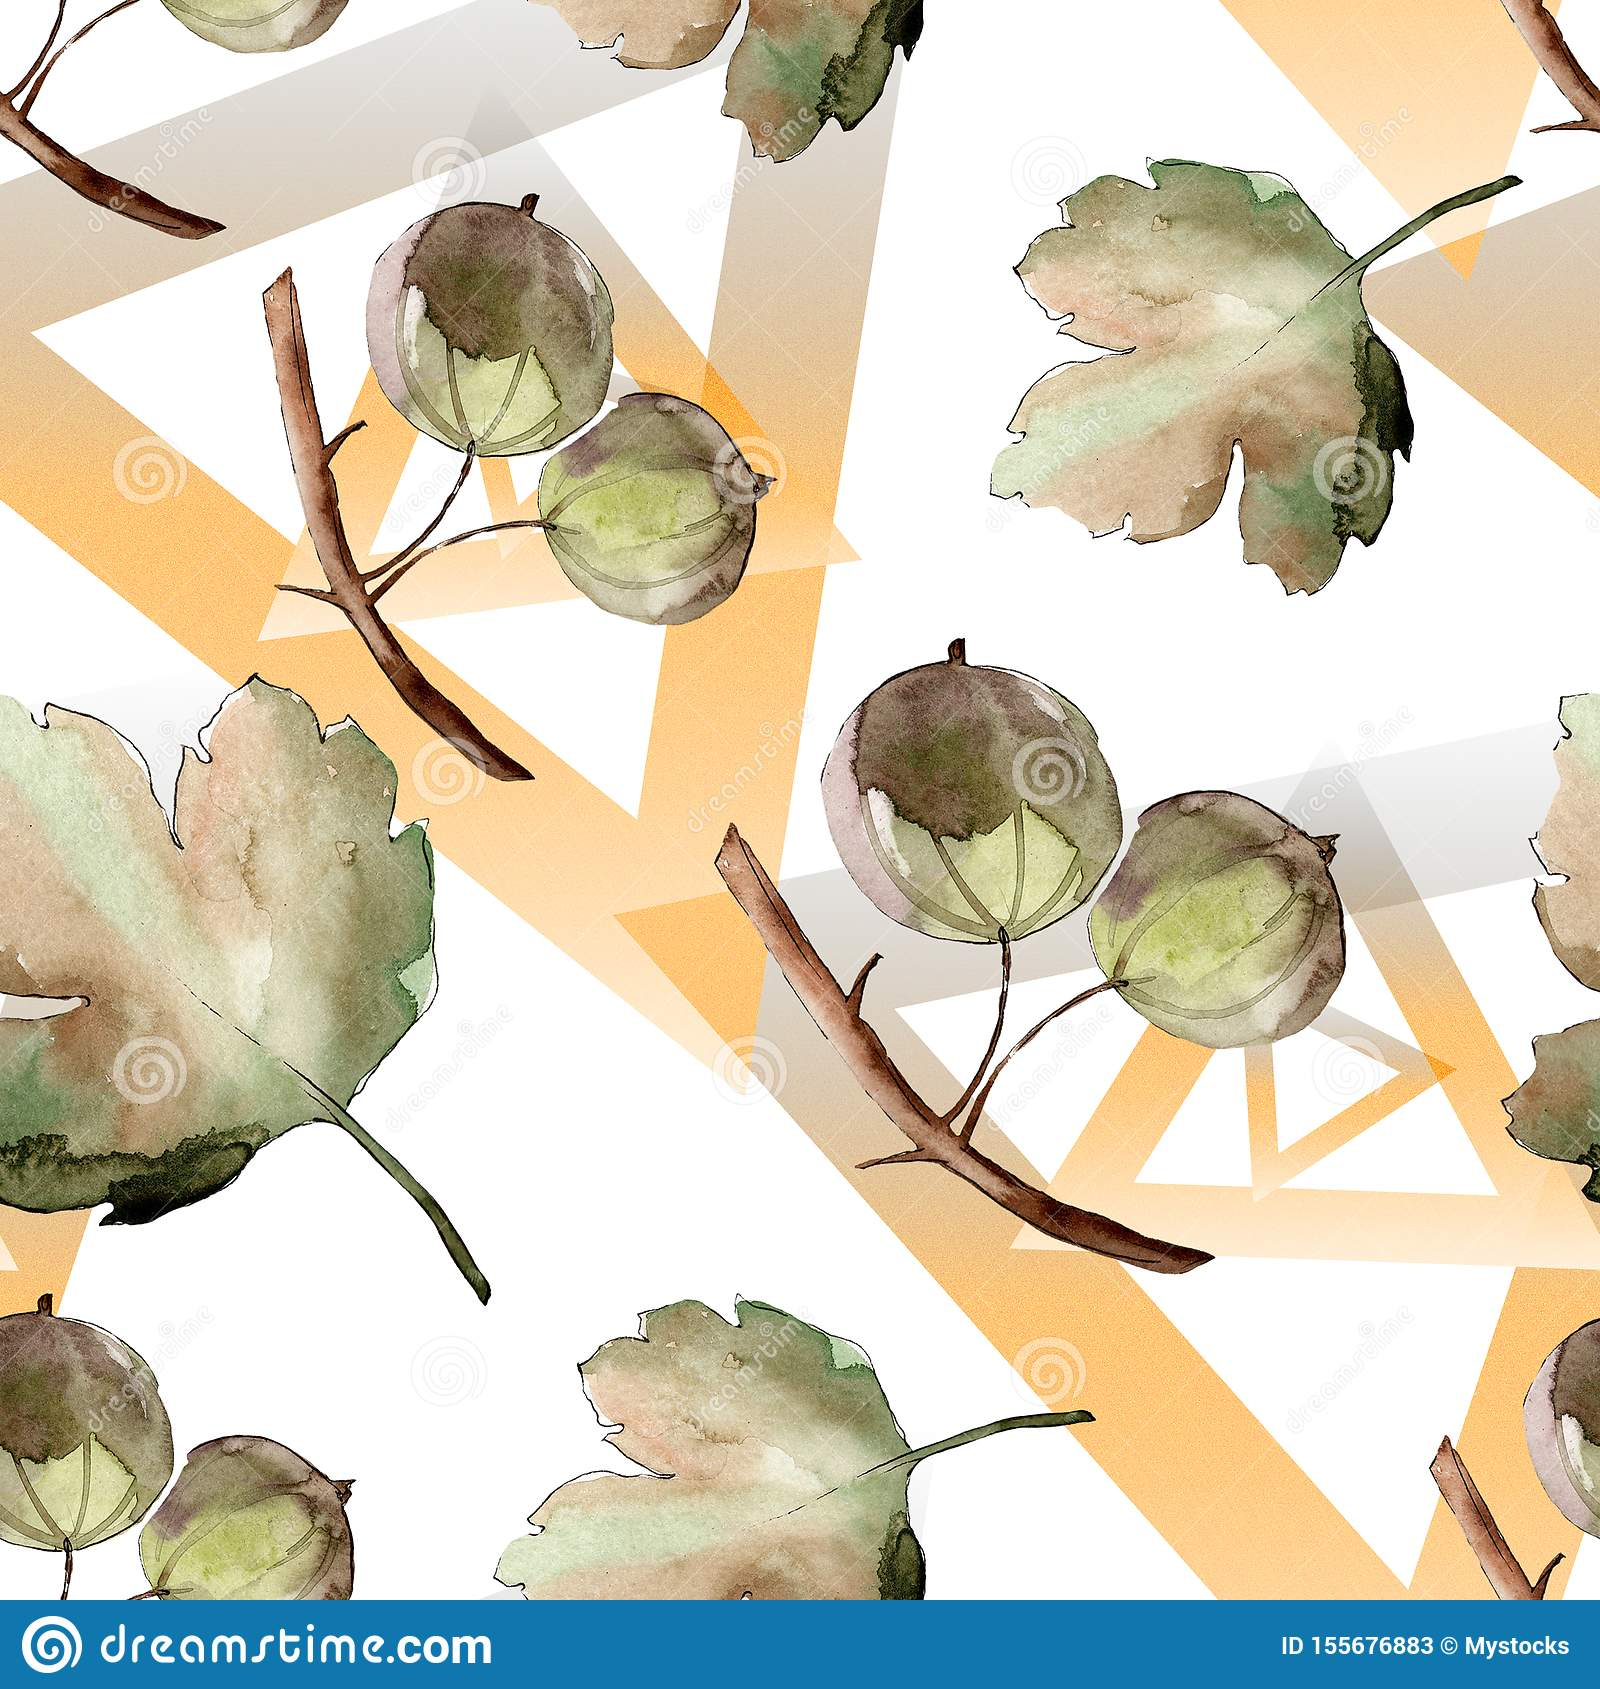 Gooseberry healthy food. Watercolor background illustration set. Seamless background pattern.